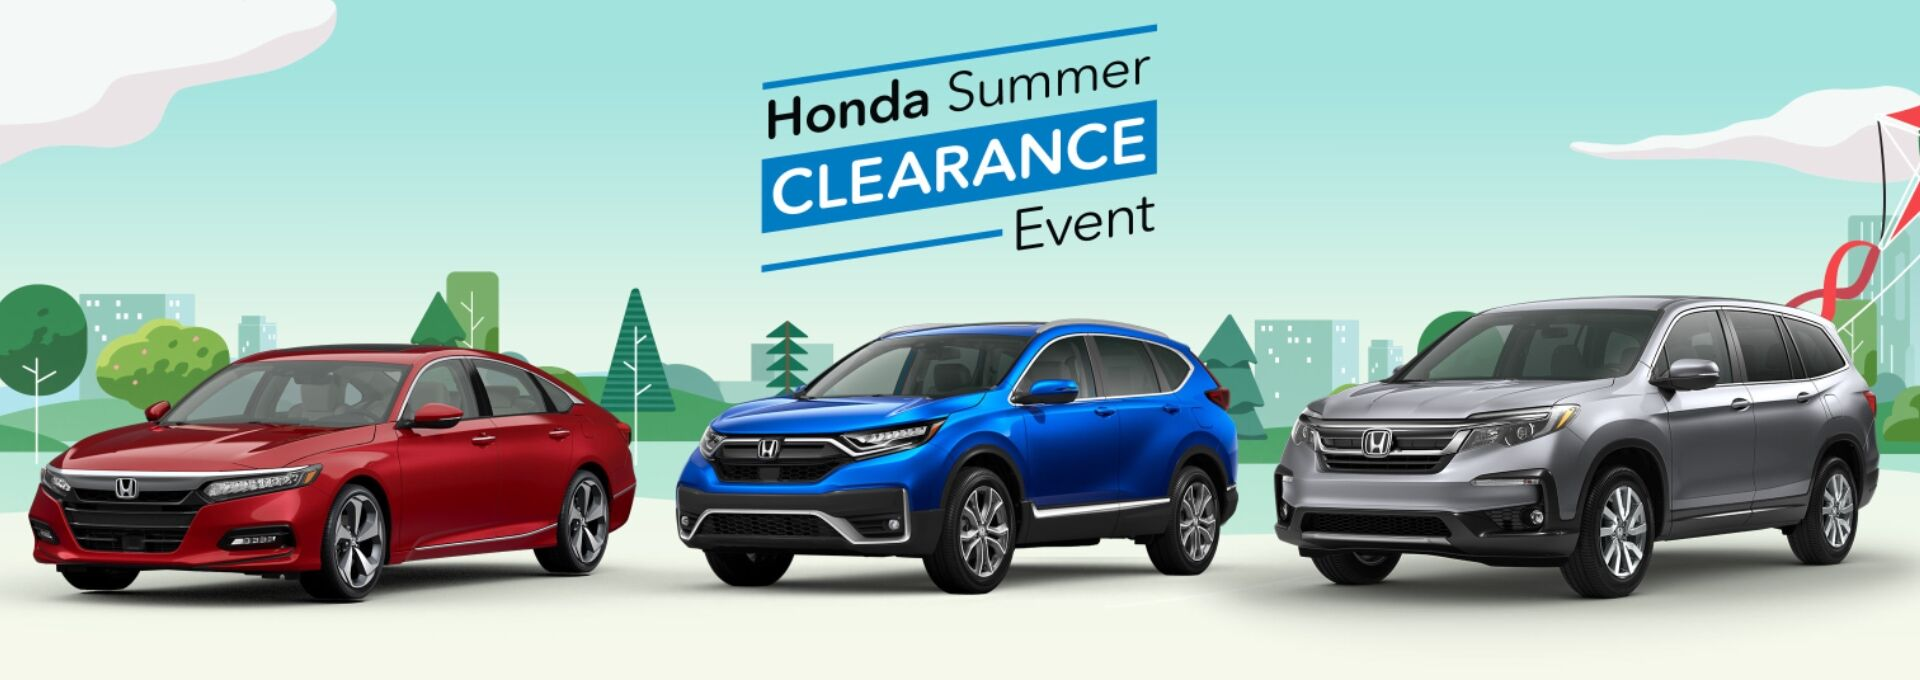 Honda Summer Clearance